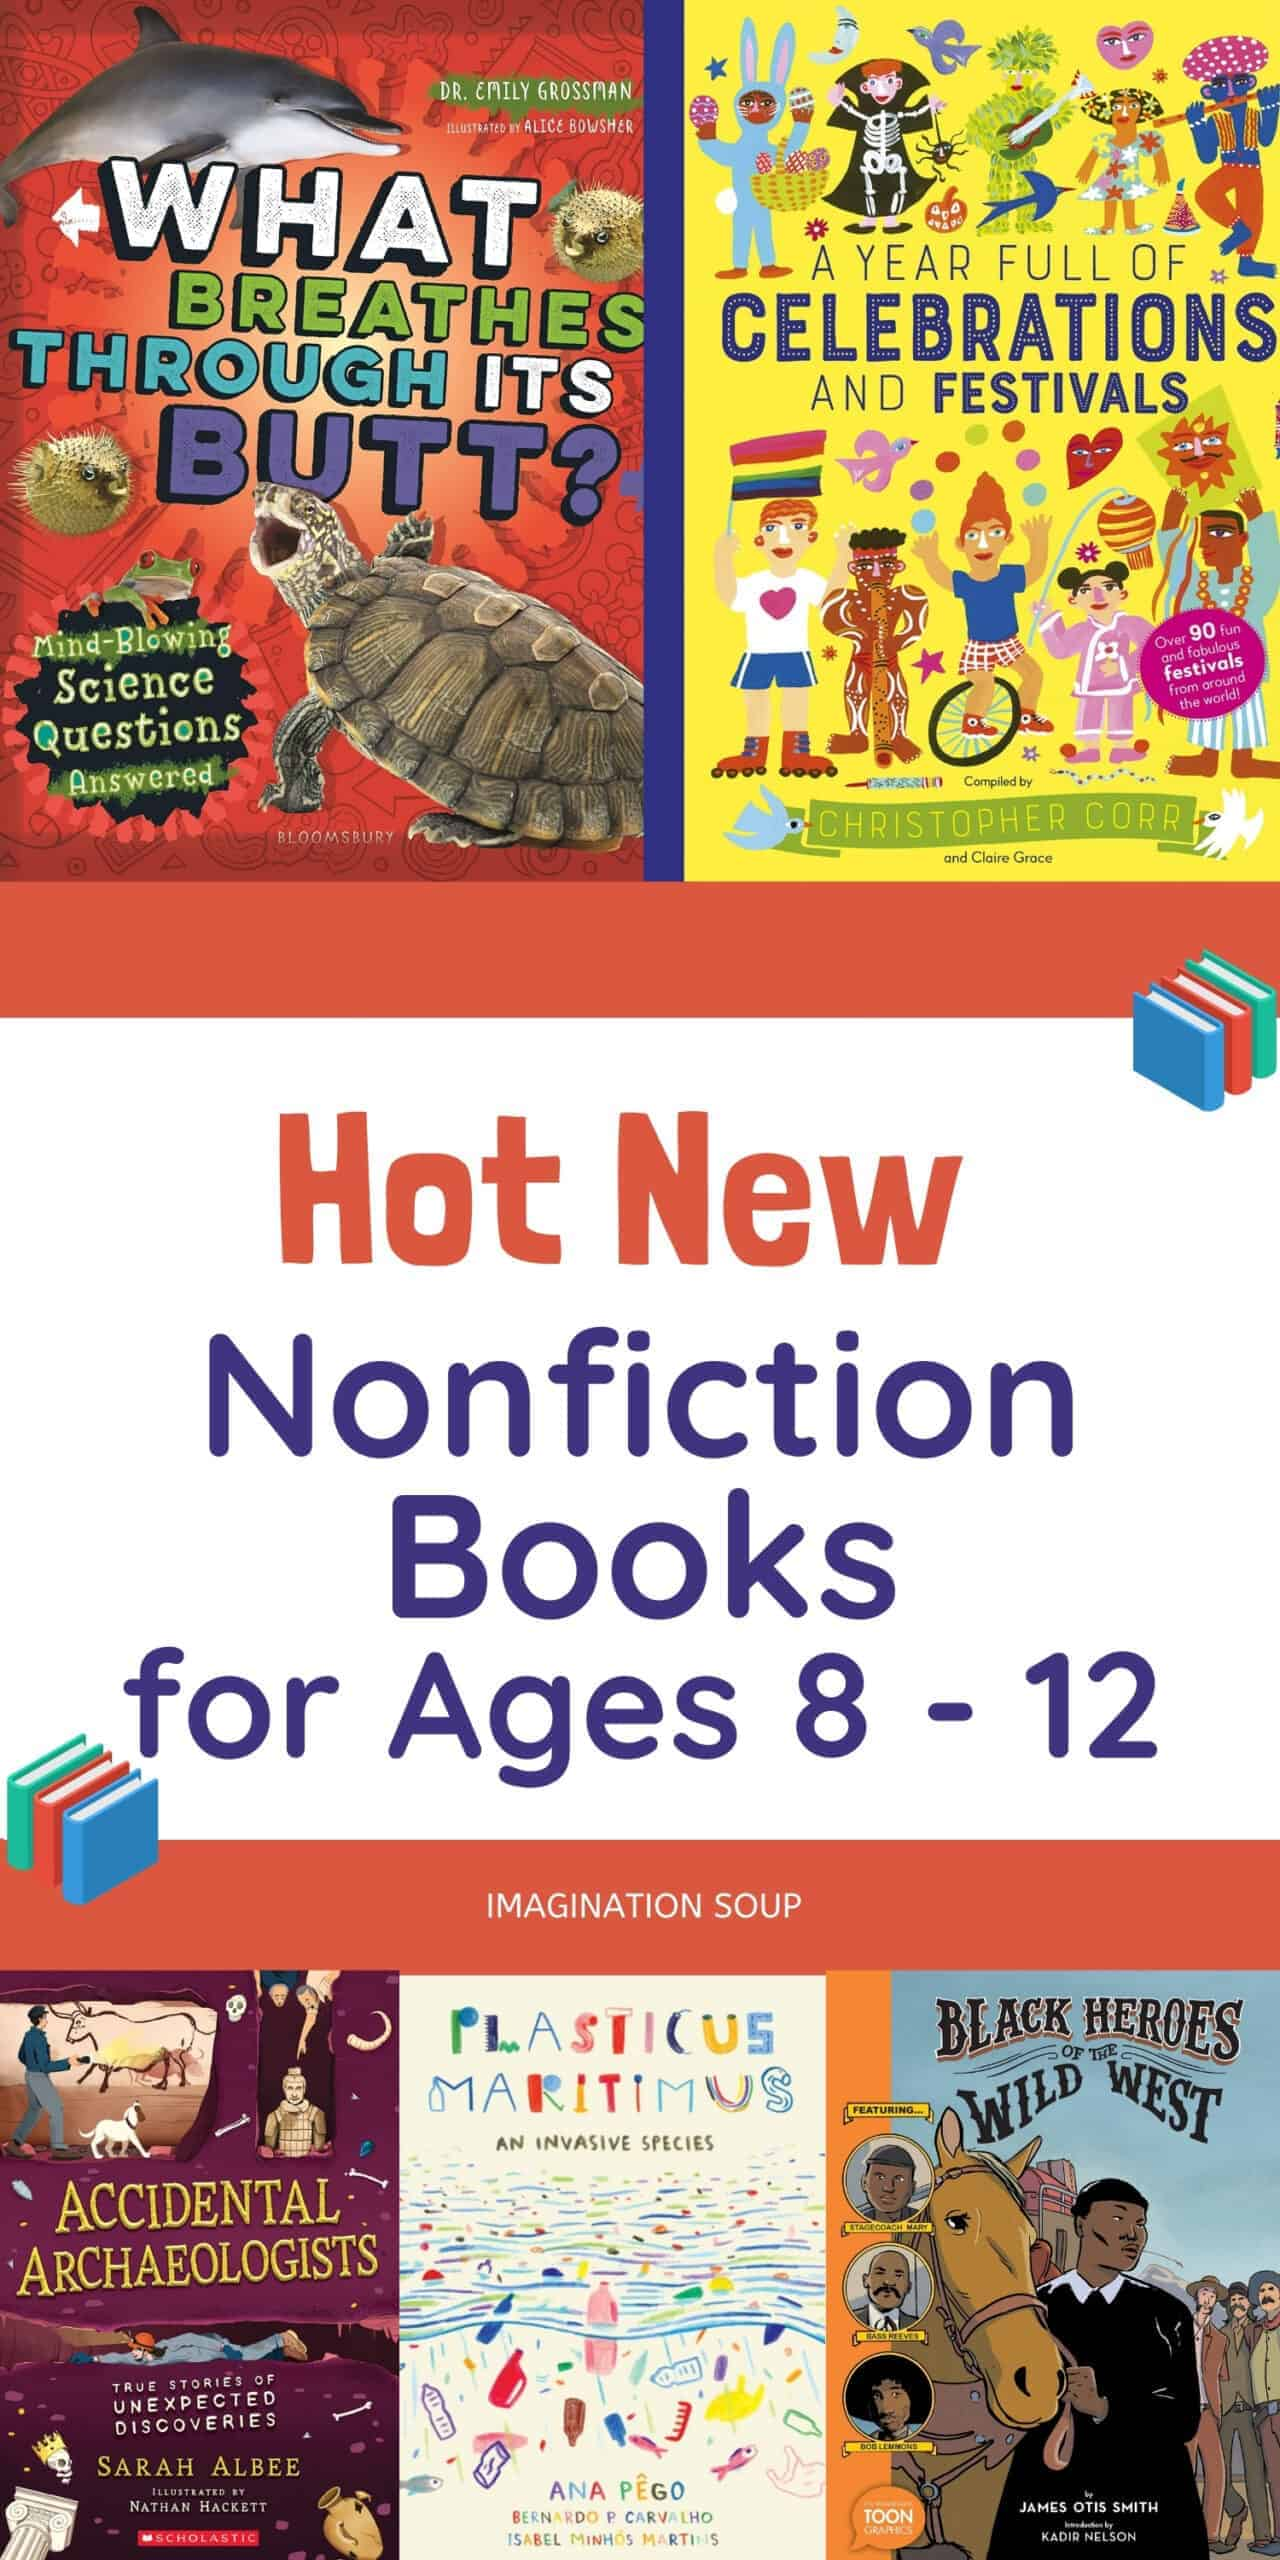 nonfiction books for kids ages 8 - 12